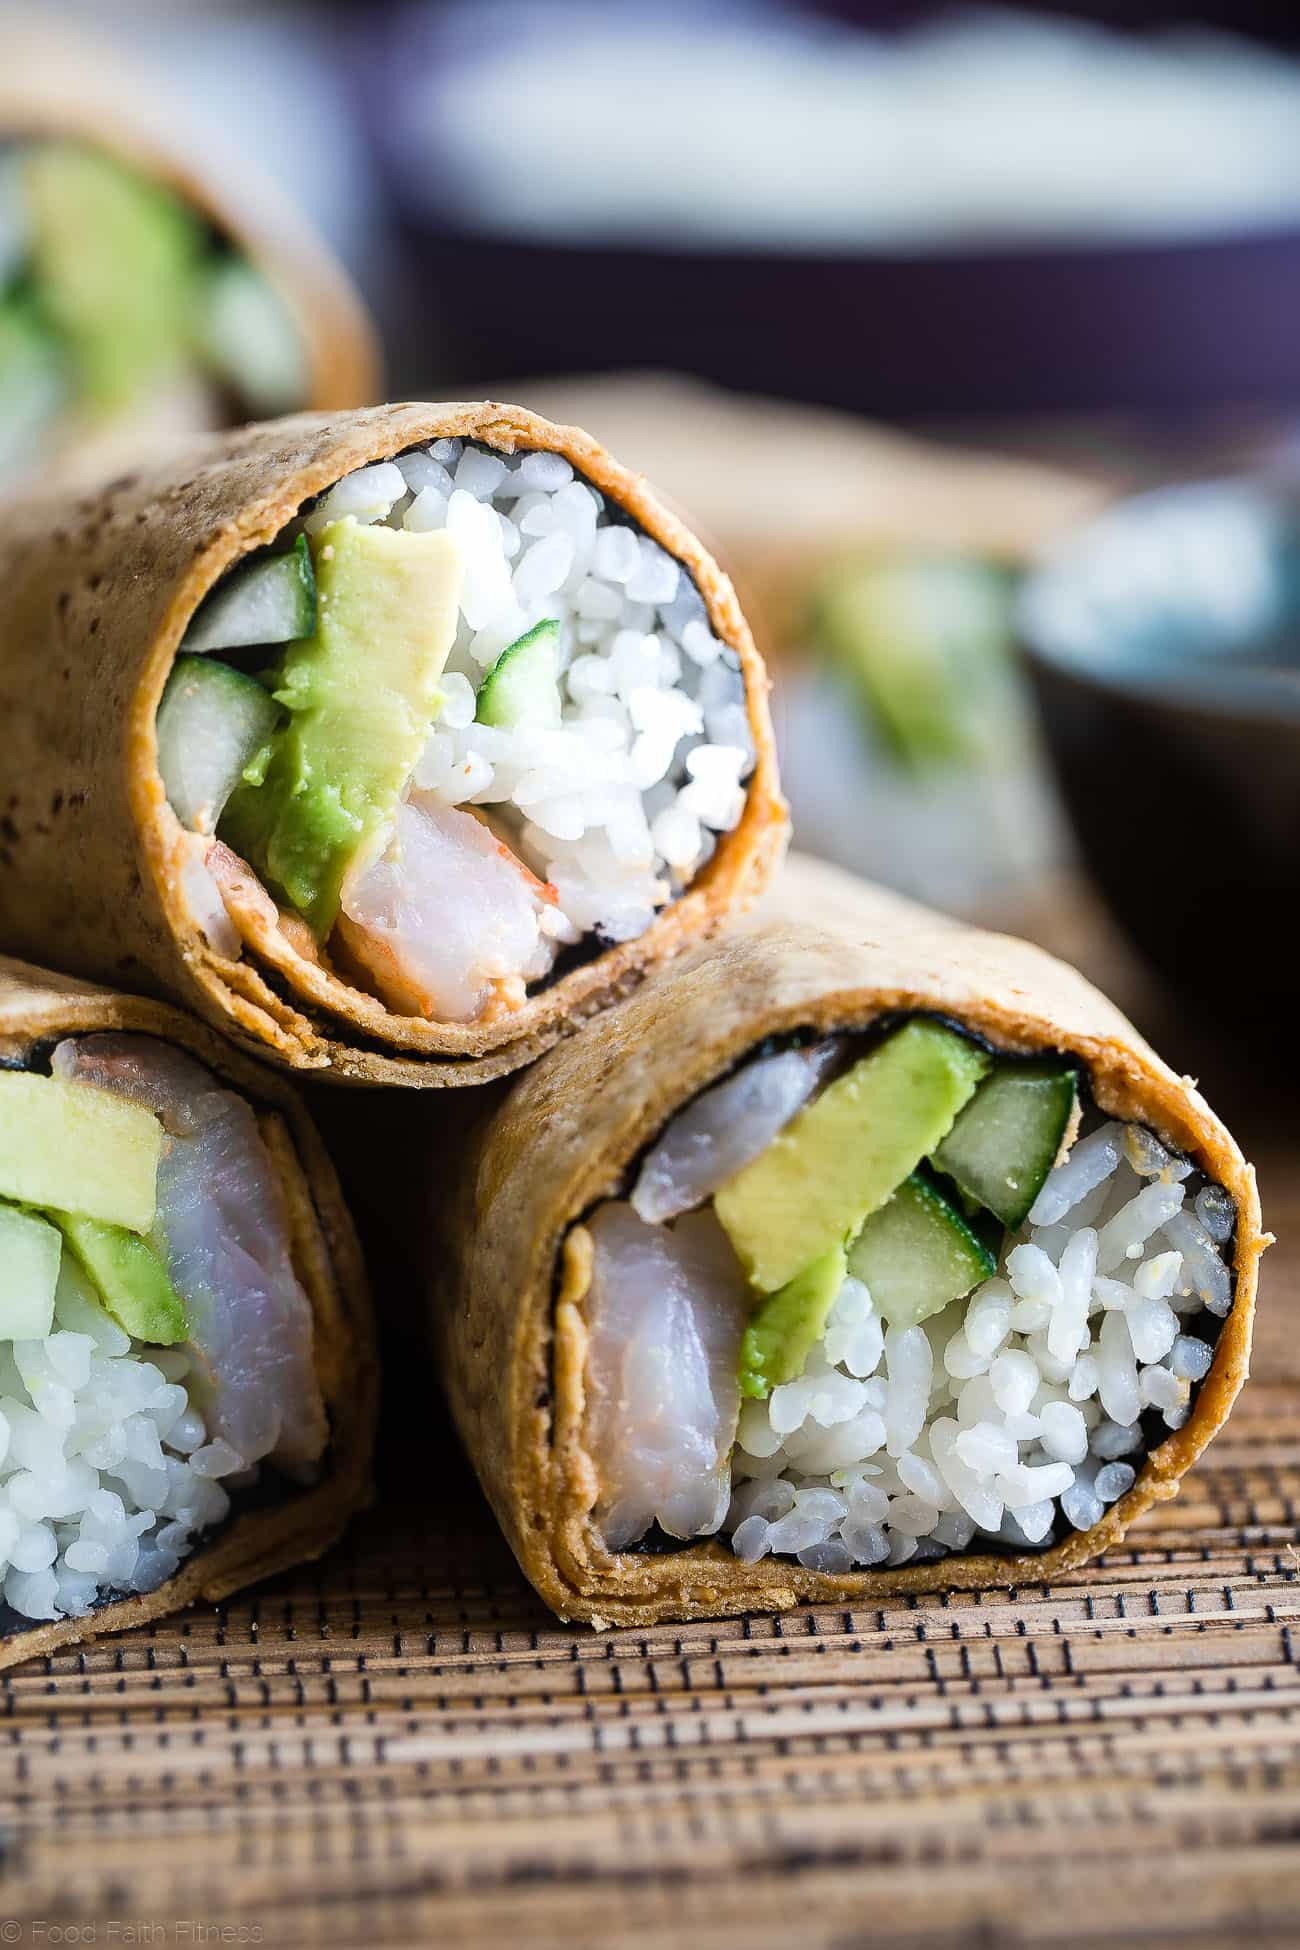 Gluten Free Spicy Shrimp Sushi Burritos -A quick and easy, healthy lunch recipe that is dairy free and has all the sushi taste, without all the work! Perfect for meal prep too! | Foodfaithfitness.com | @FoodFaithFit